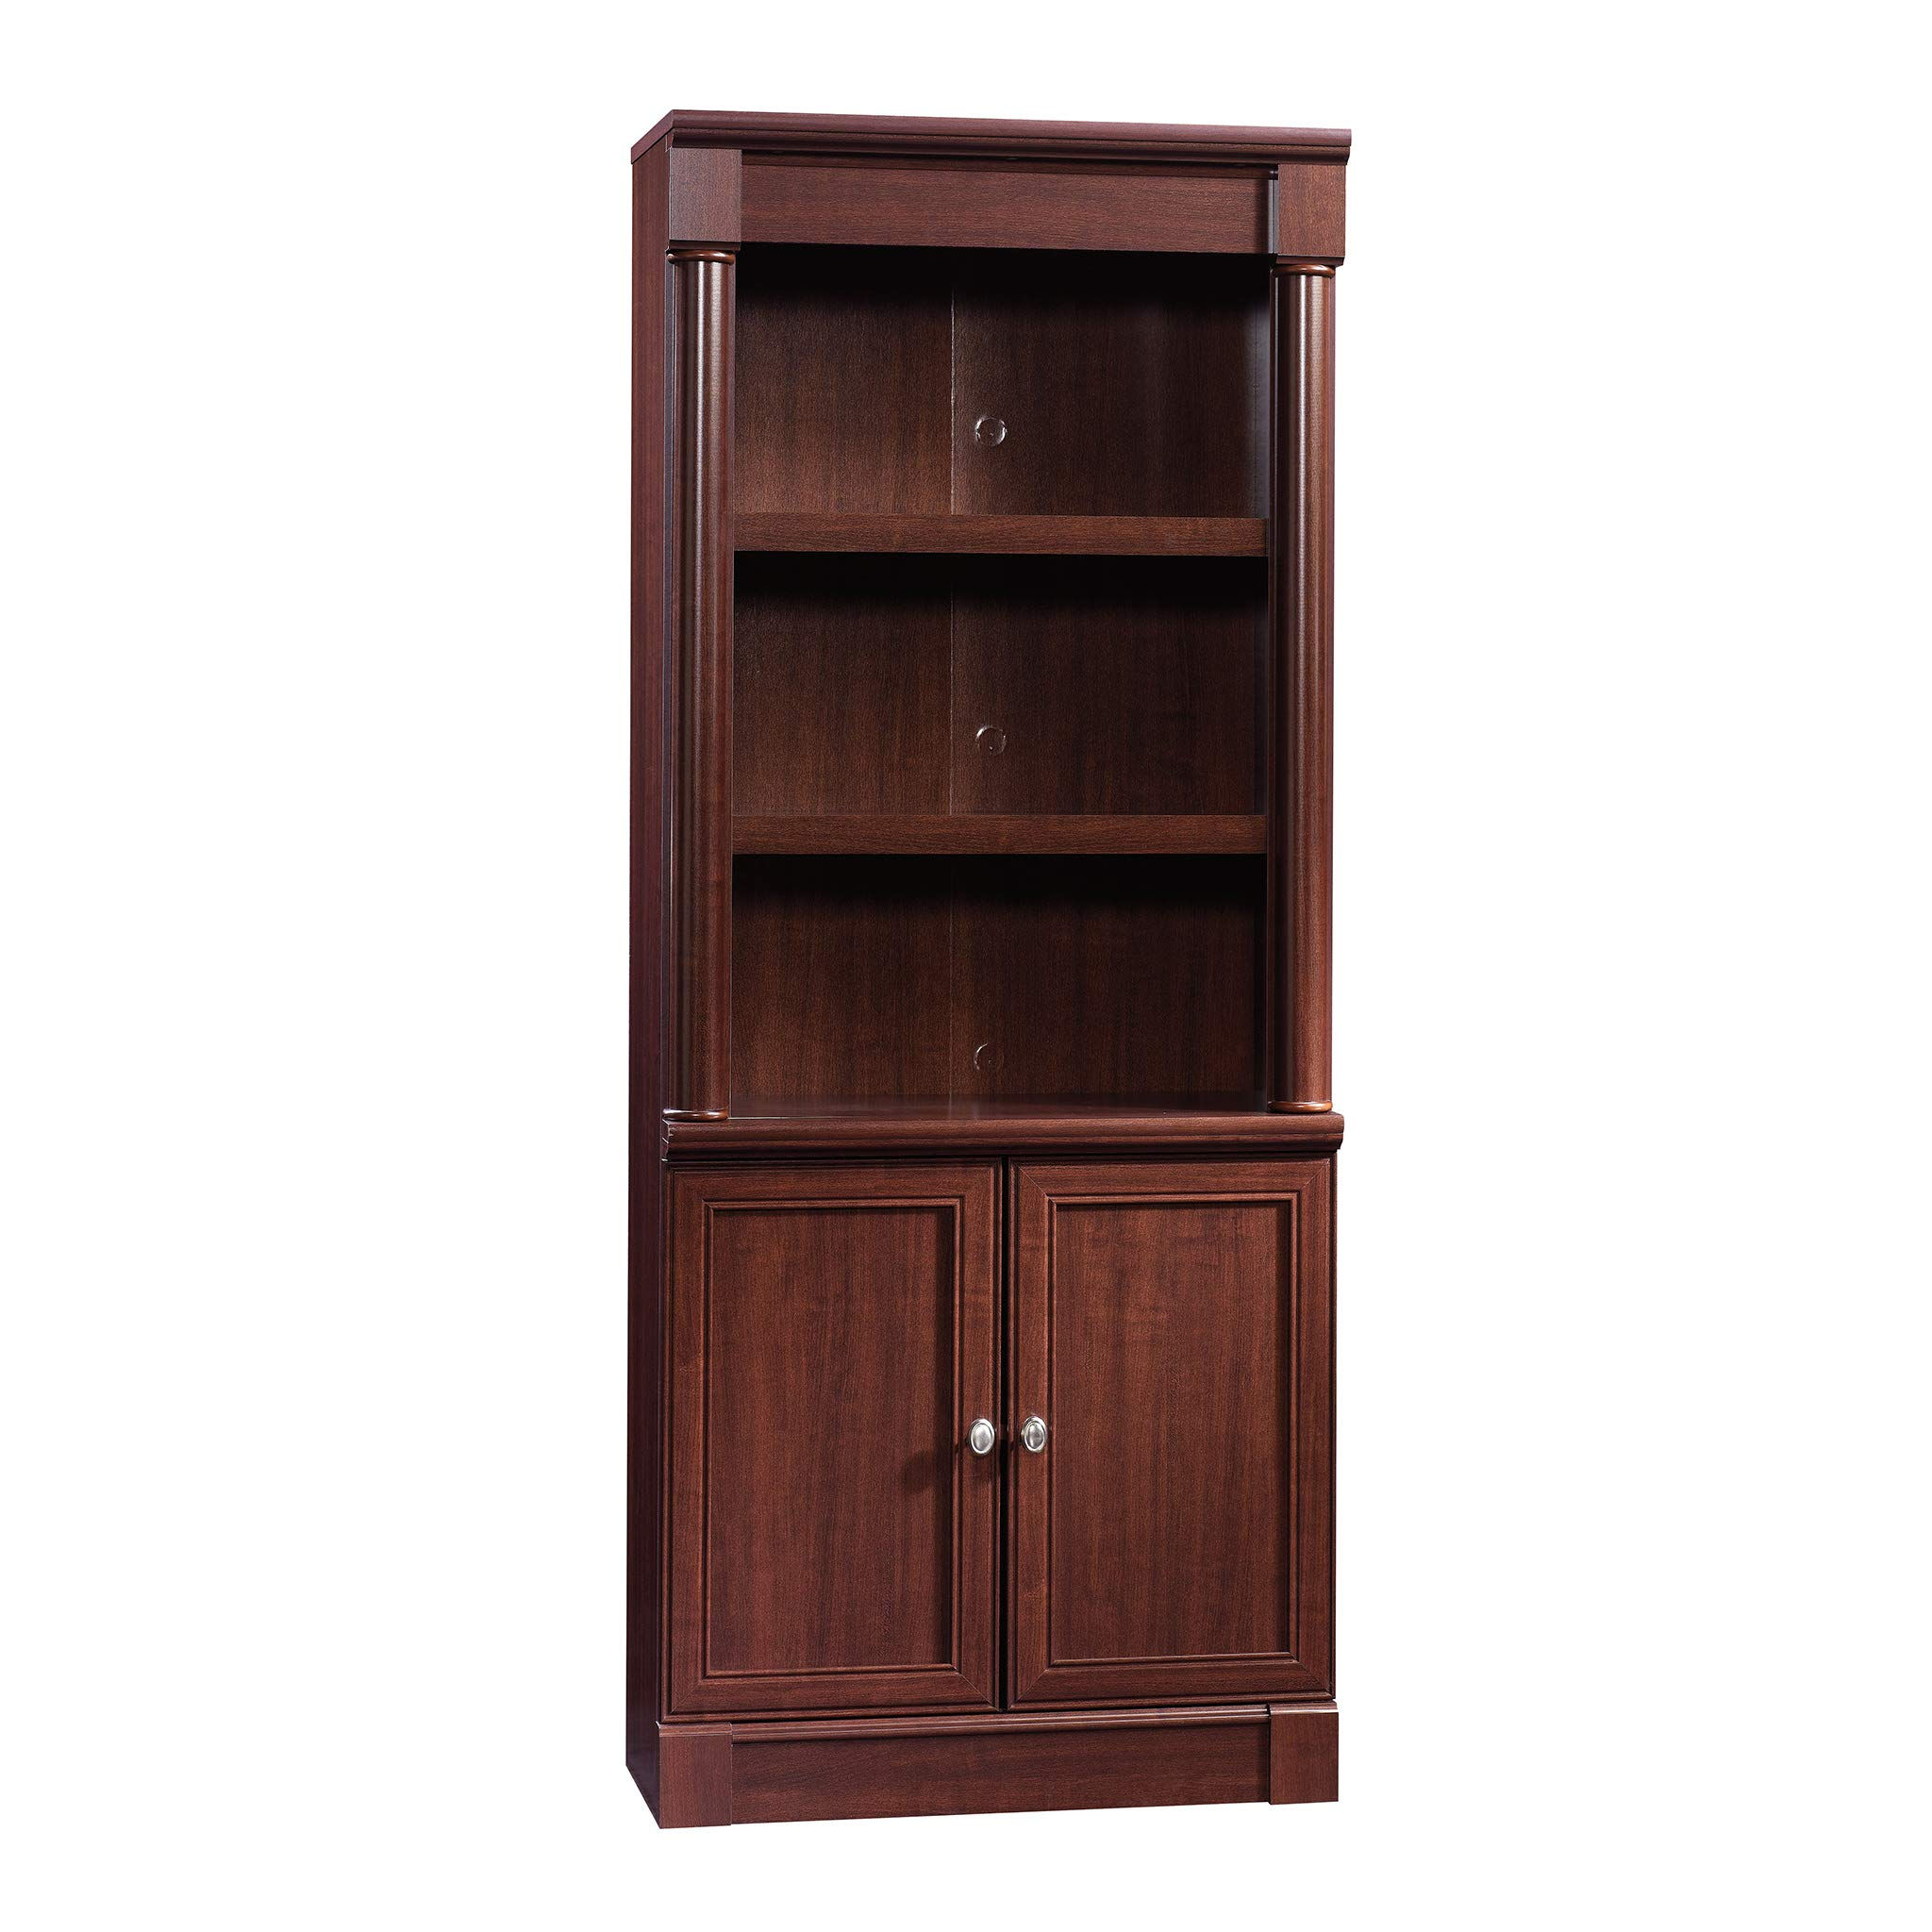 Sauder 412019 Palladia Library with Doors, L: 29.37'' x W: 13.90'' x H: 71.85'', Select Cherry finish by Sauder